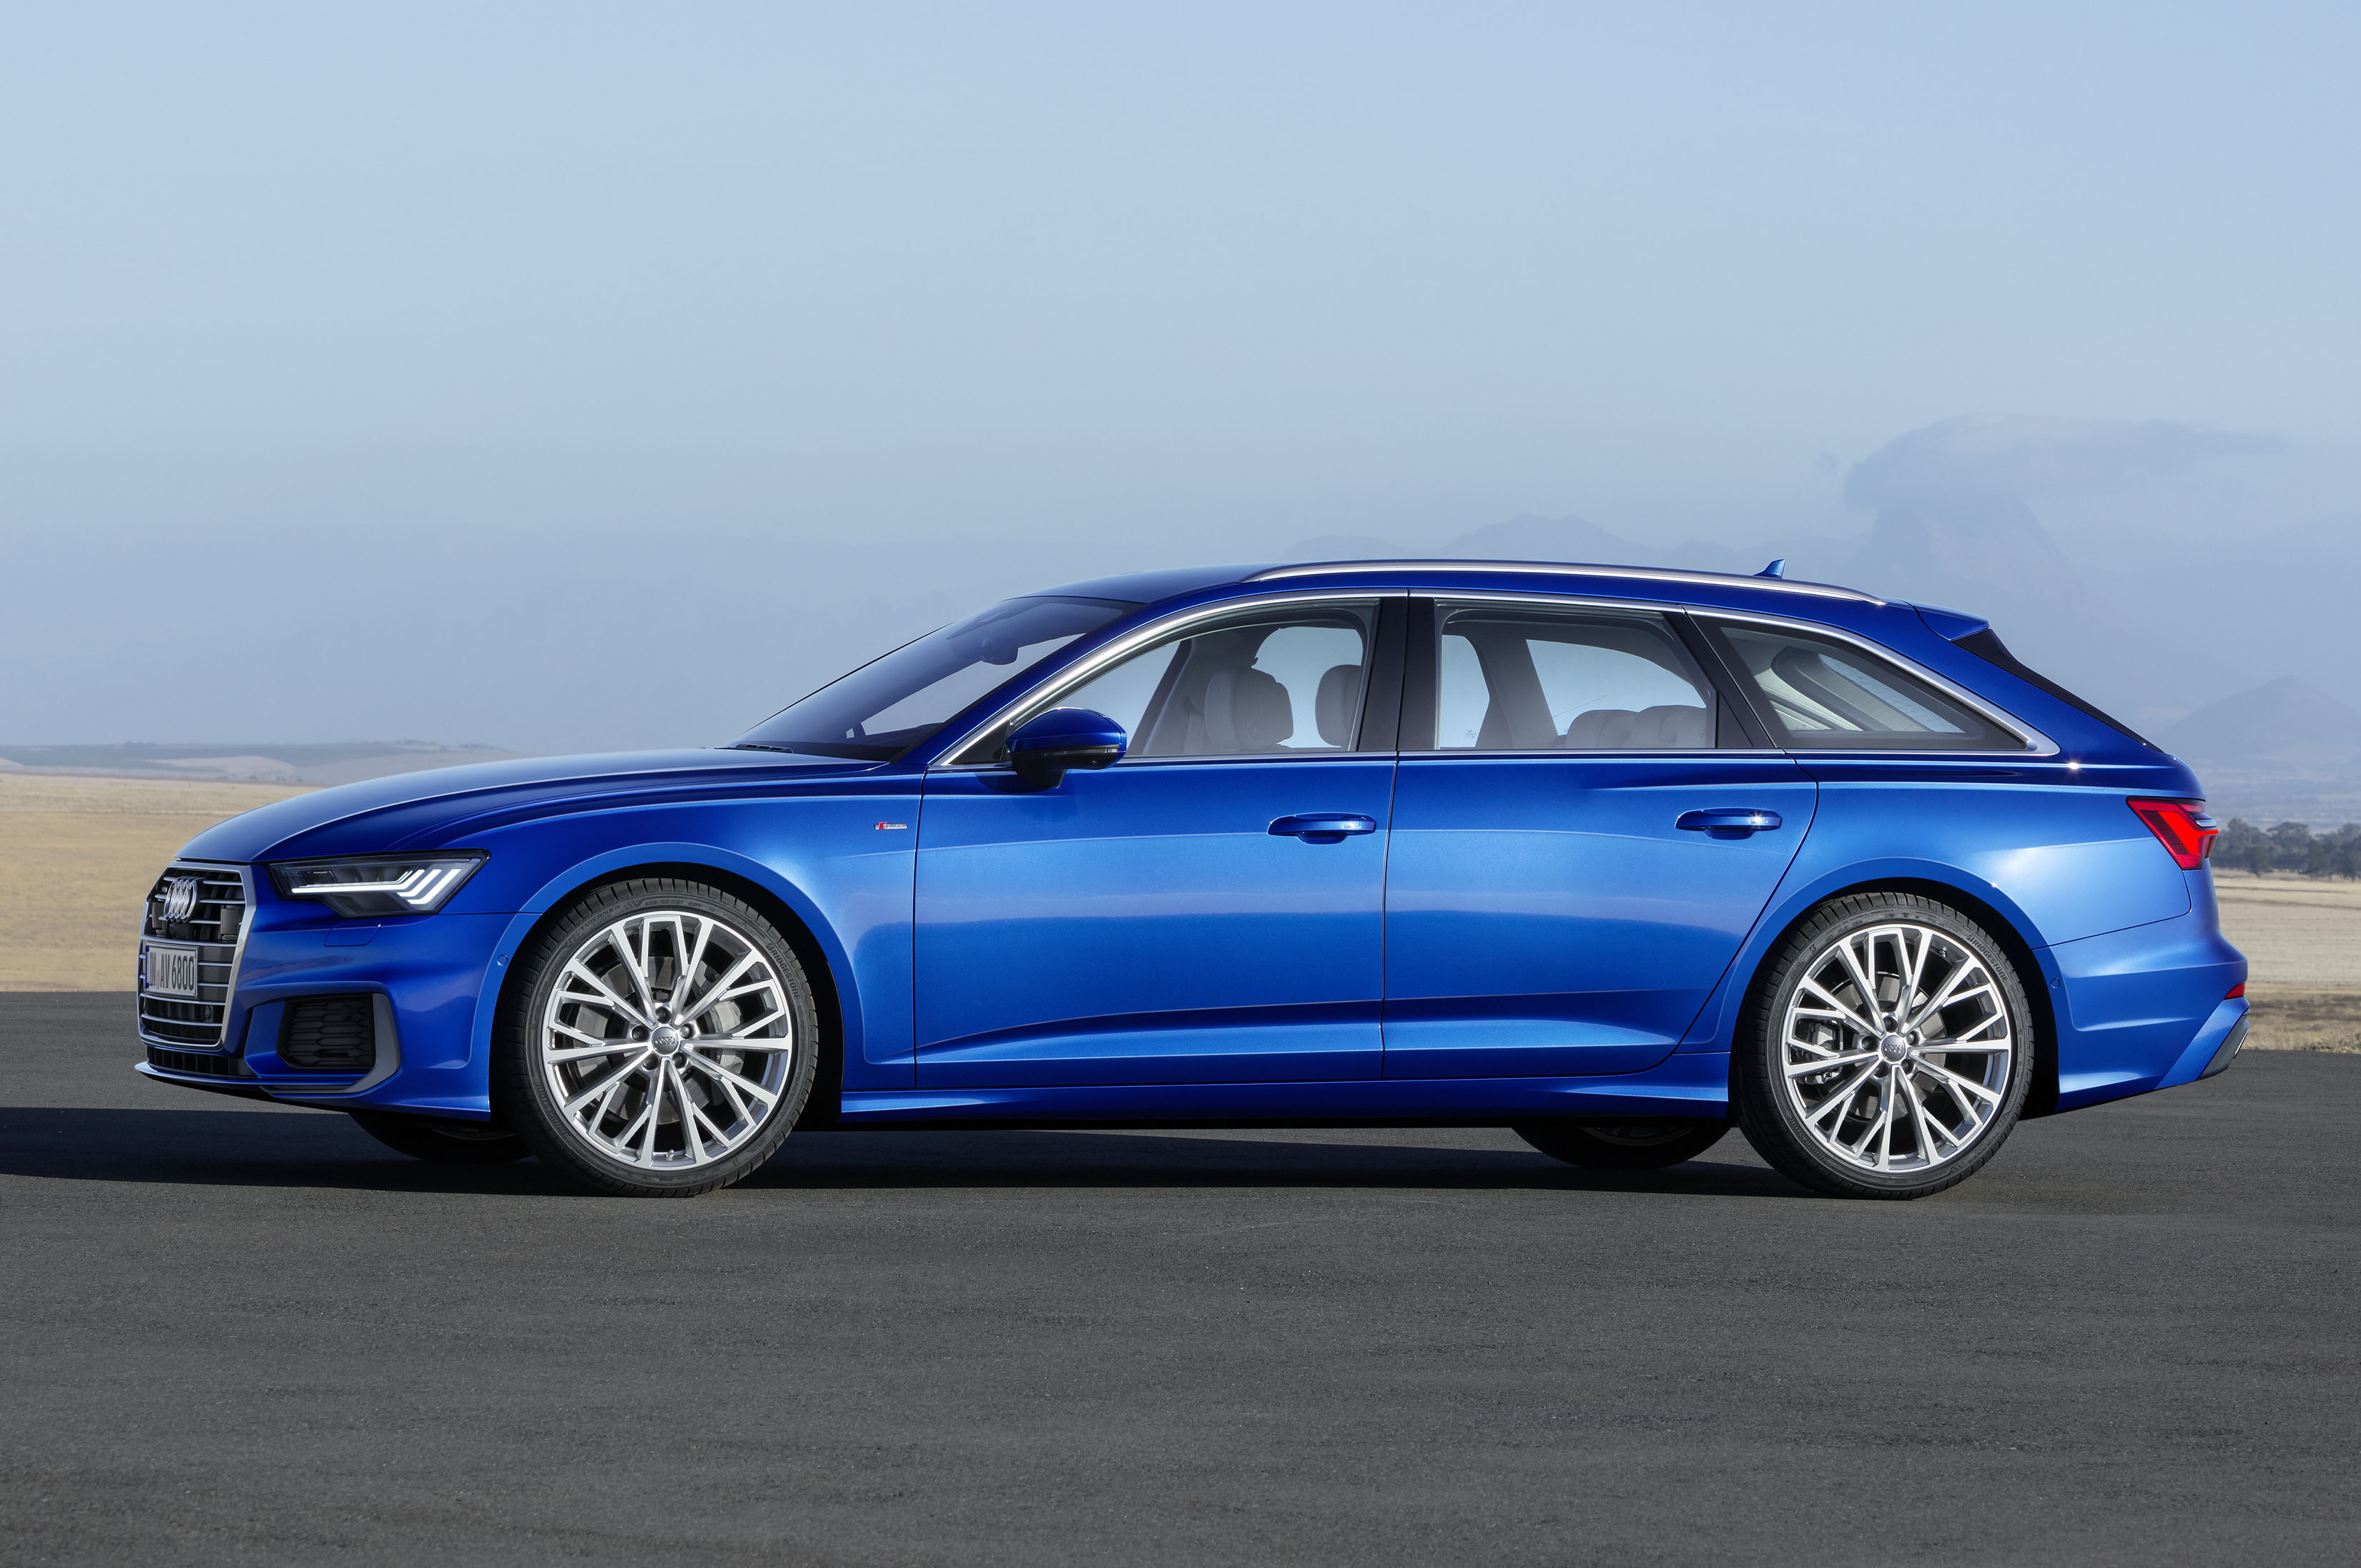 Redesigned Audi A6 Avant Premieres With No Plans To Apply For A U S